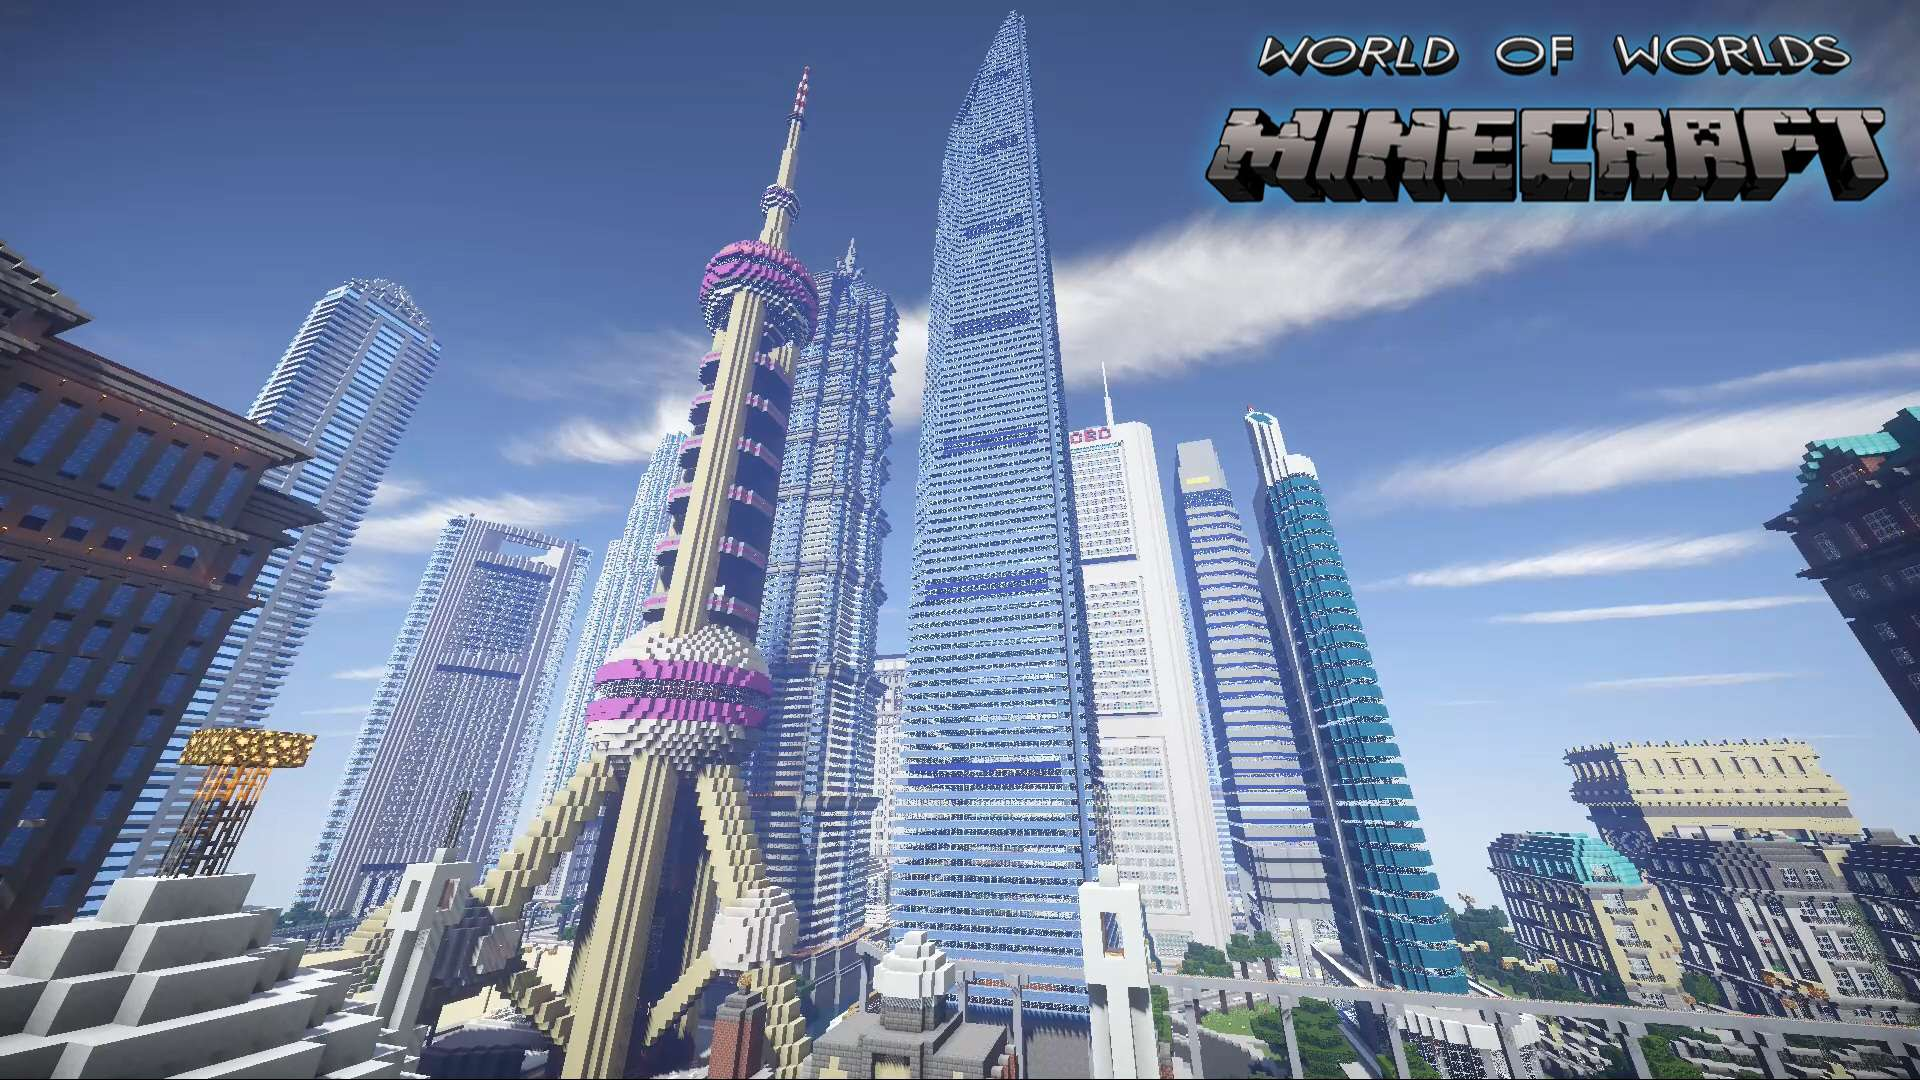 World of worlds minecraft building inc for World s longest video